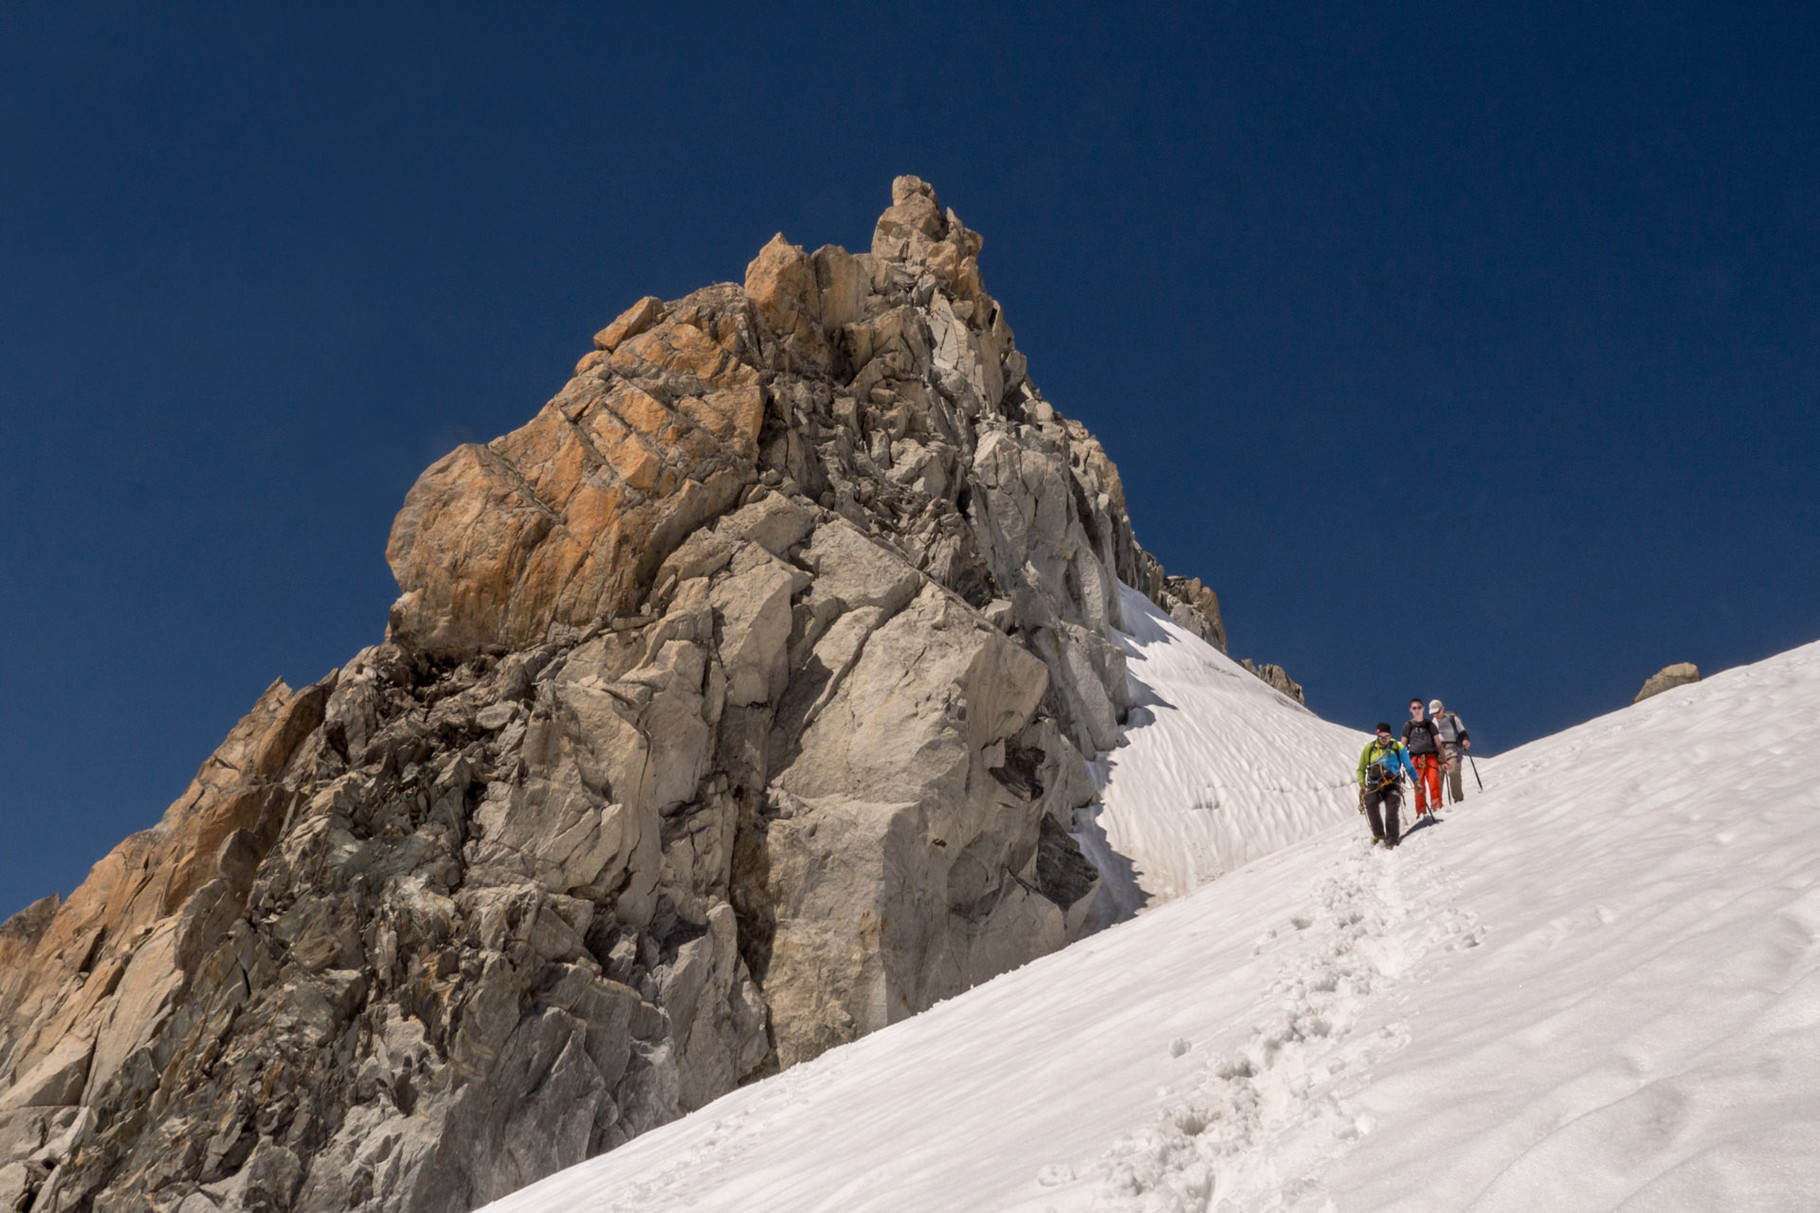 Descent from Aiguille du Tour